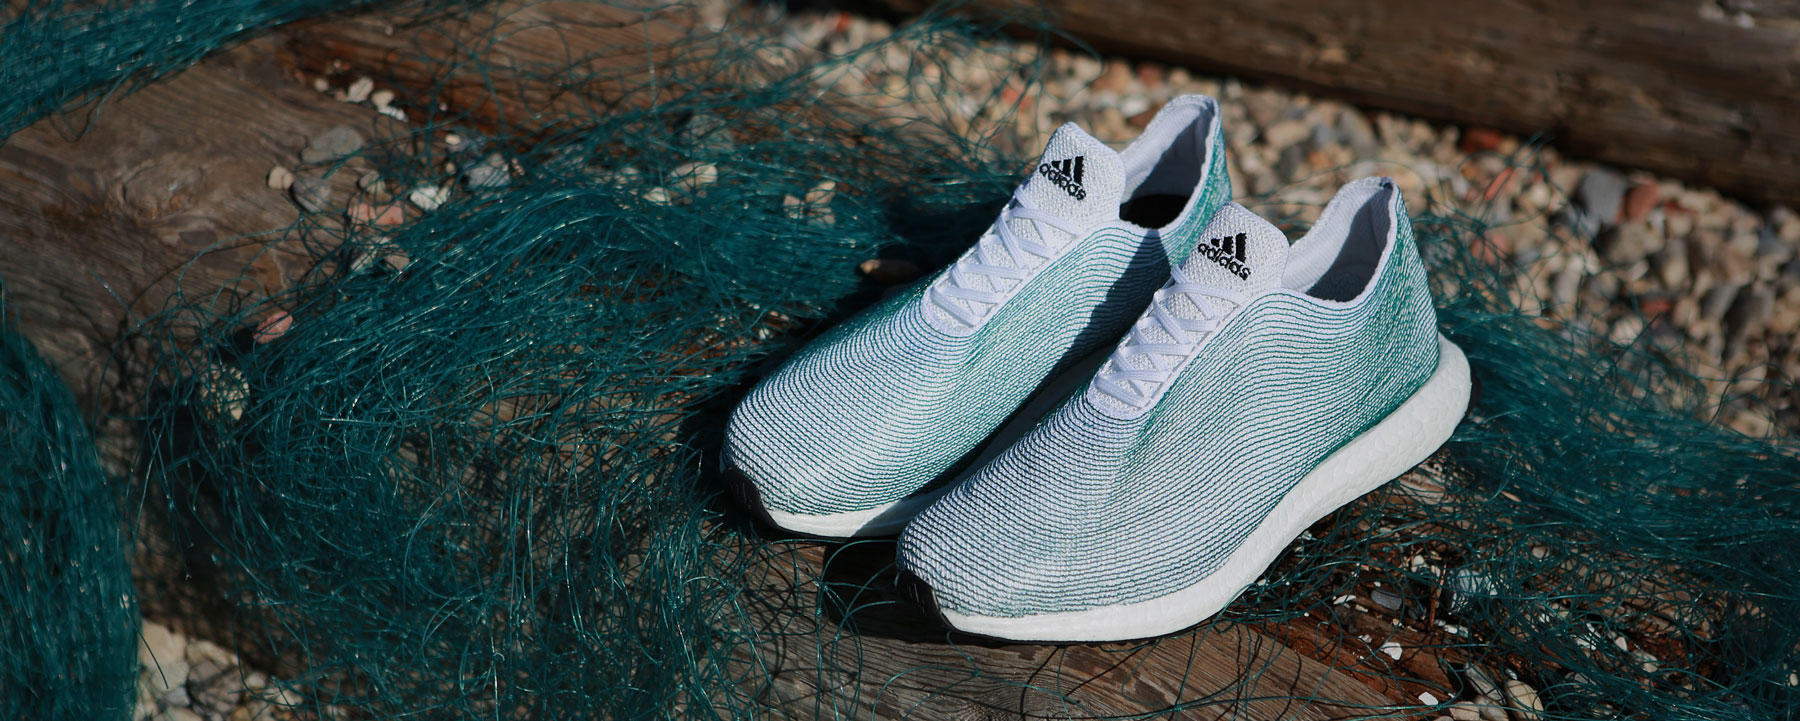 Shoes made from plastic pollution